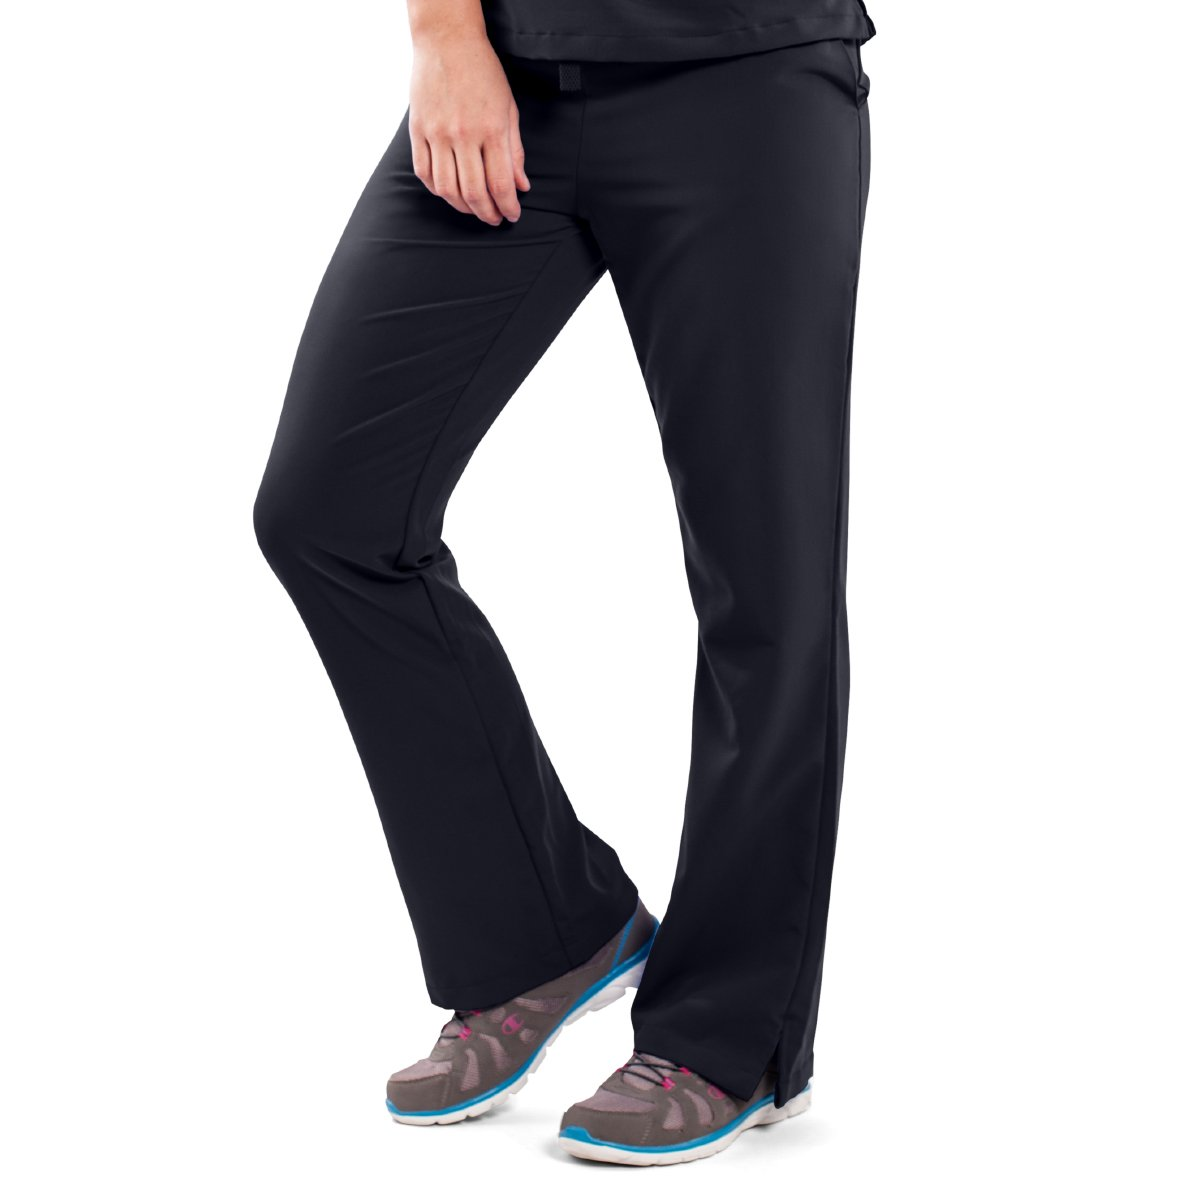 ave Women's Medical Scrub Pants, Melrose ave, Bootcut Style, Drawstring and Elastic Waist, Great for Nurses, Black, Small Tall